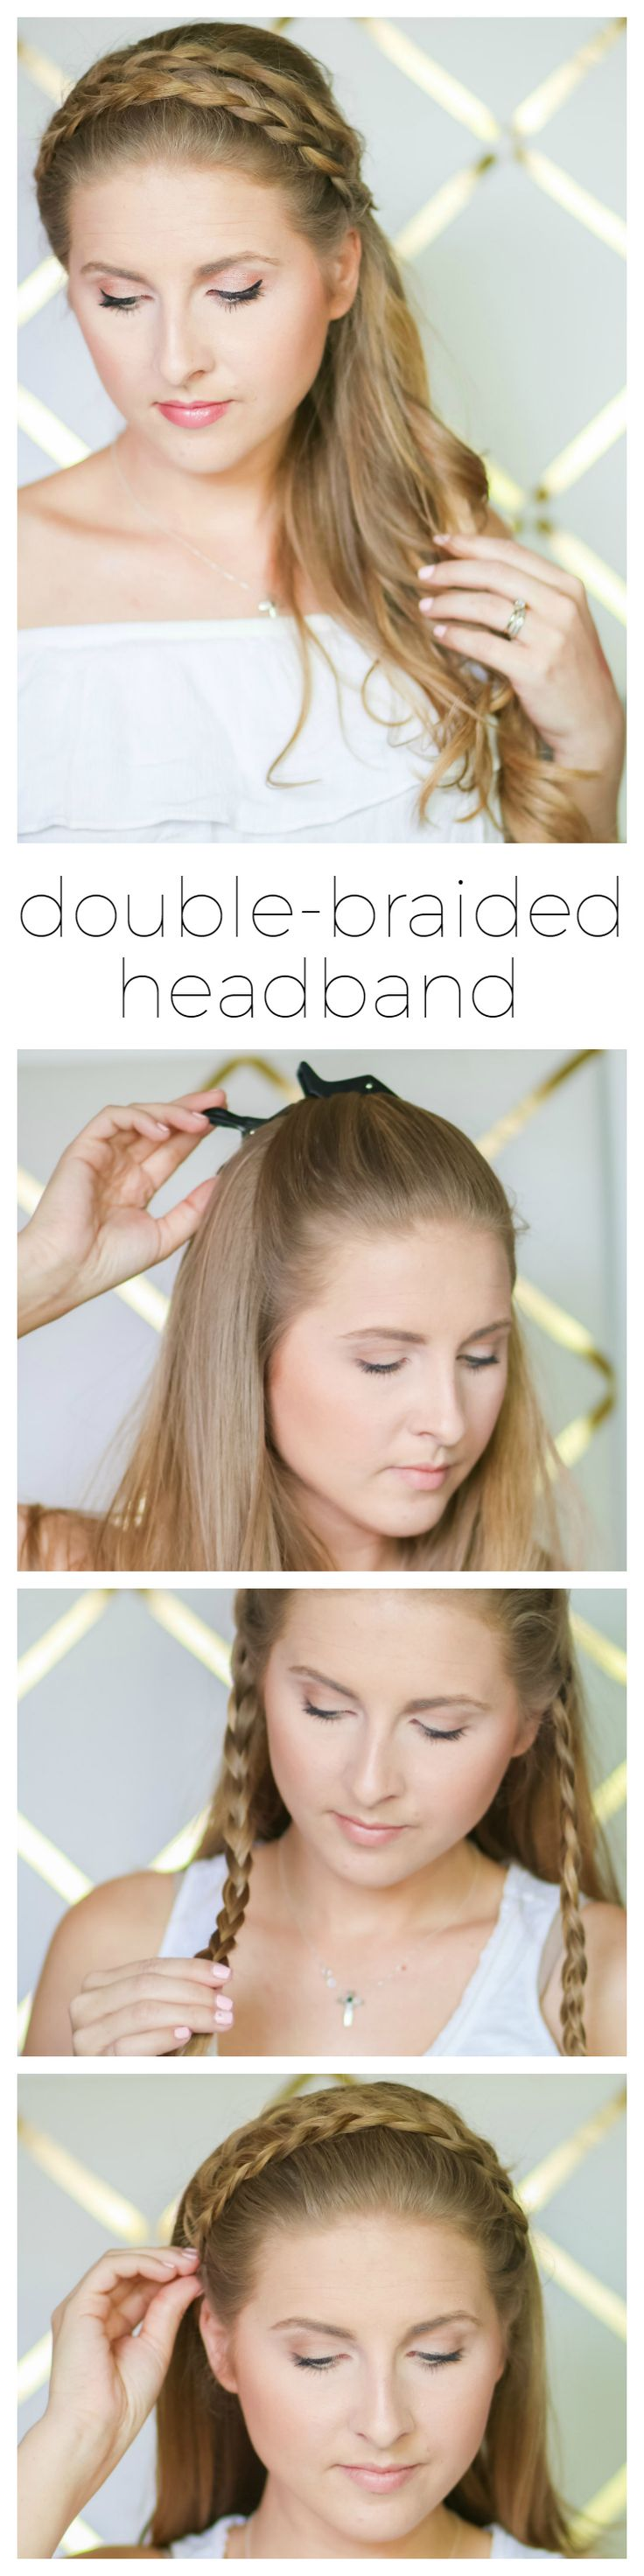 Learn how to create a cute braided headband hairstyle that's perfect for summer days outdoors. This simple, step-by-step tutorial by Ashley Brooke from ashleybrookenicholas.com is quick and easy! I'm also sharing one of favorite new summer hair products from @suavebeauty! #suavebeliever #sponsored